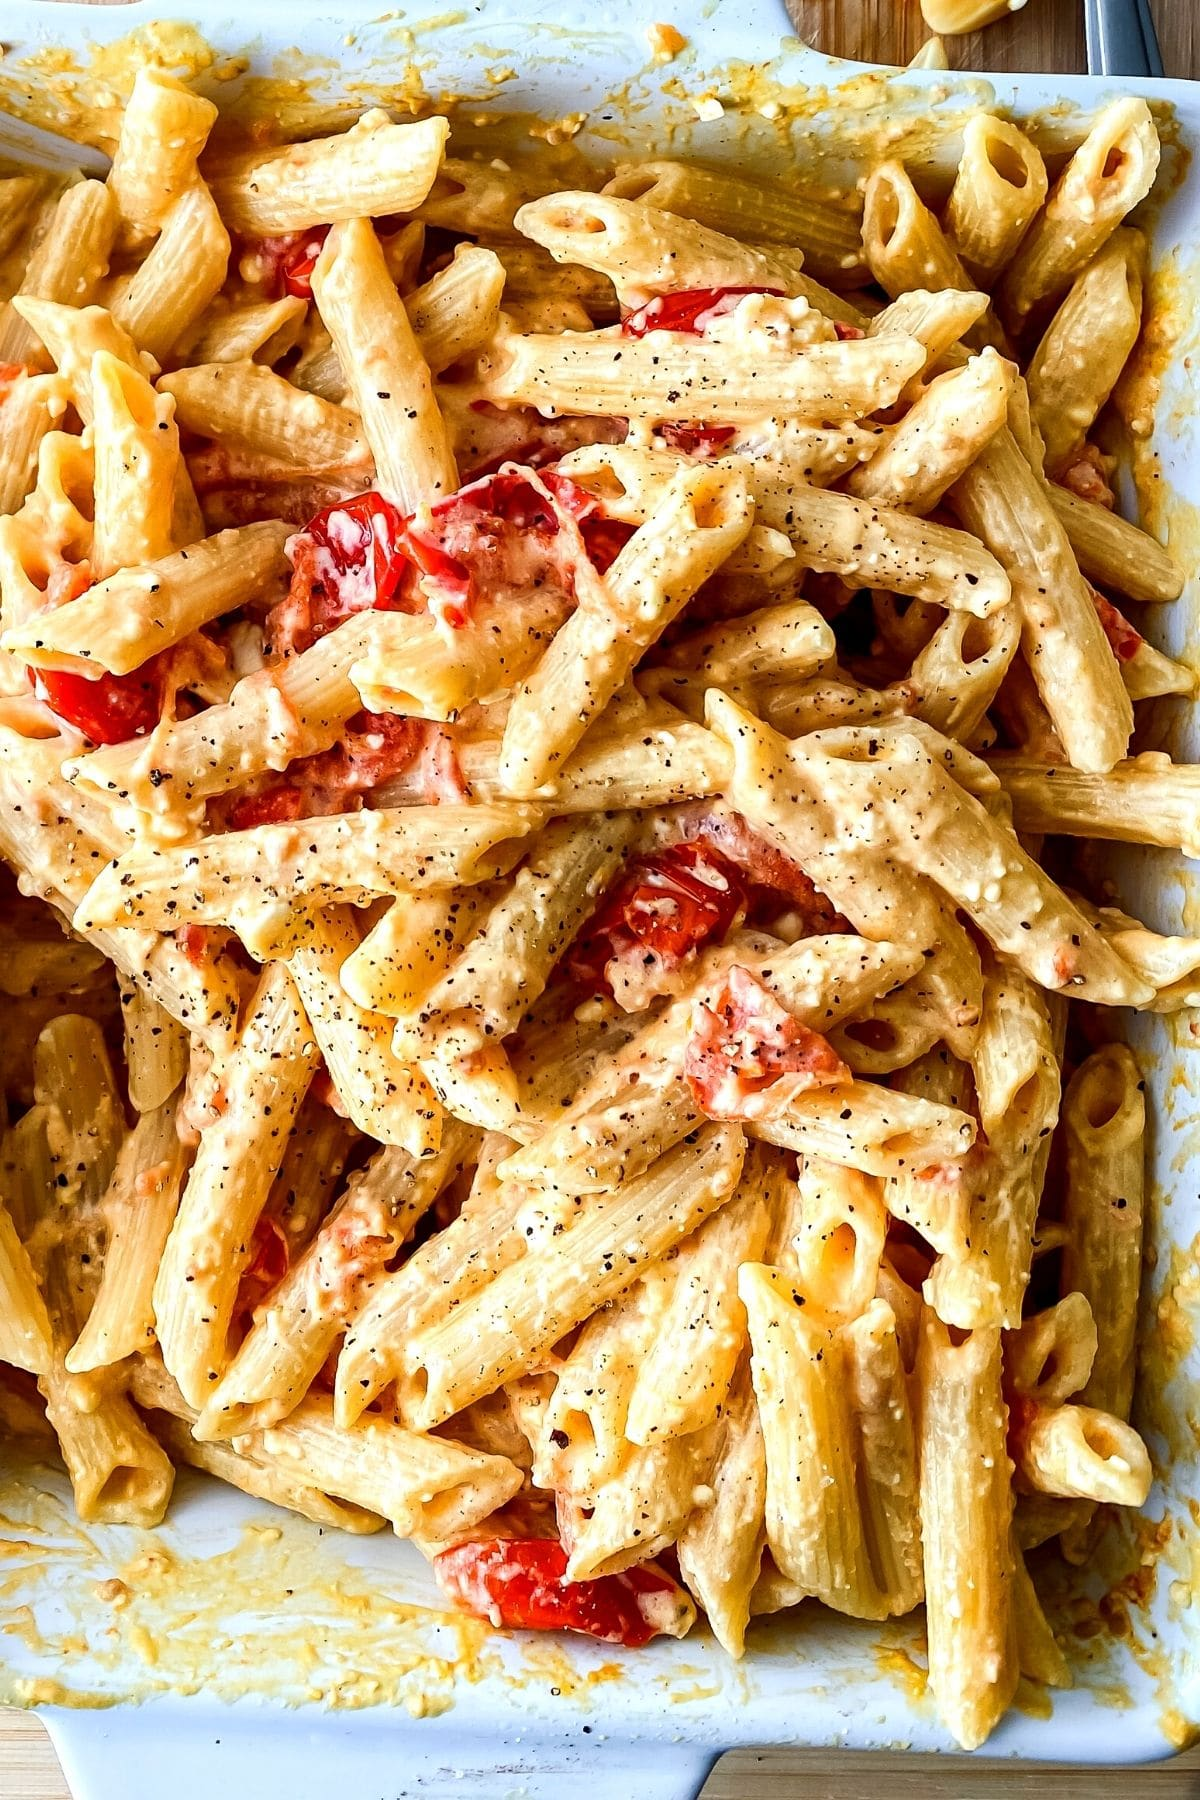 Dish of baked pasta on cutting board